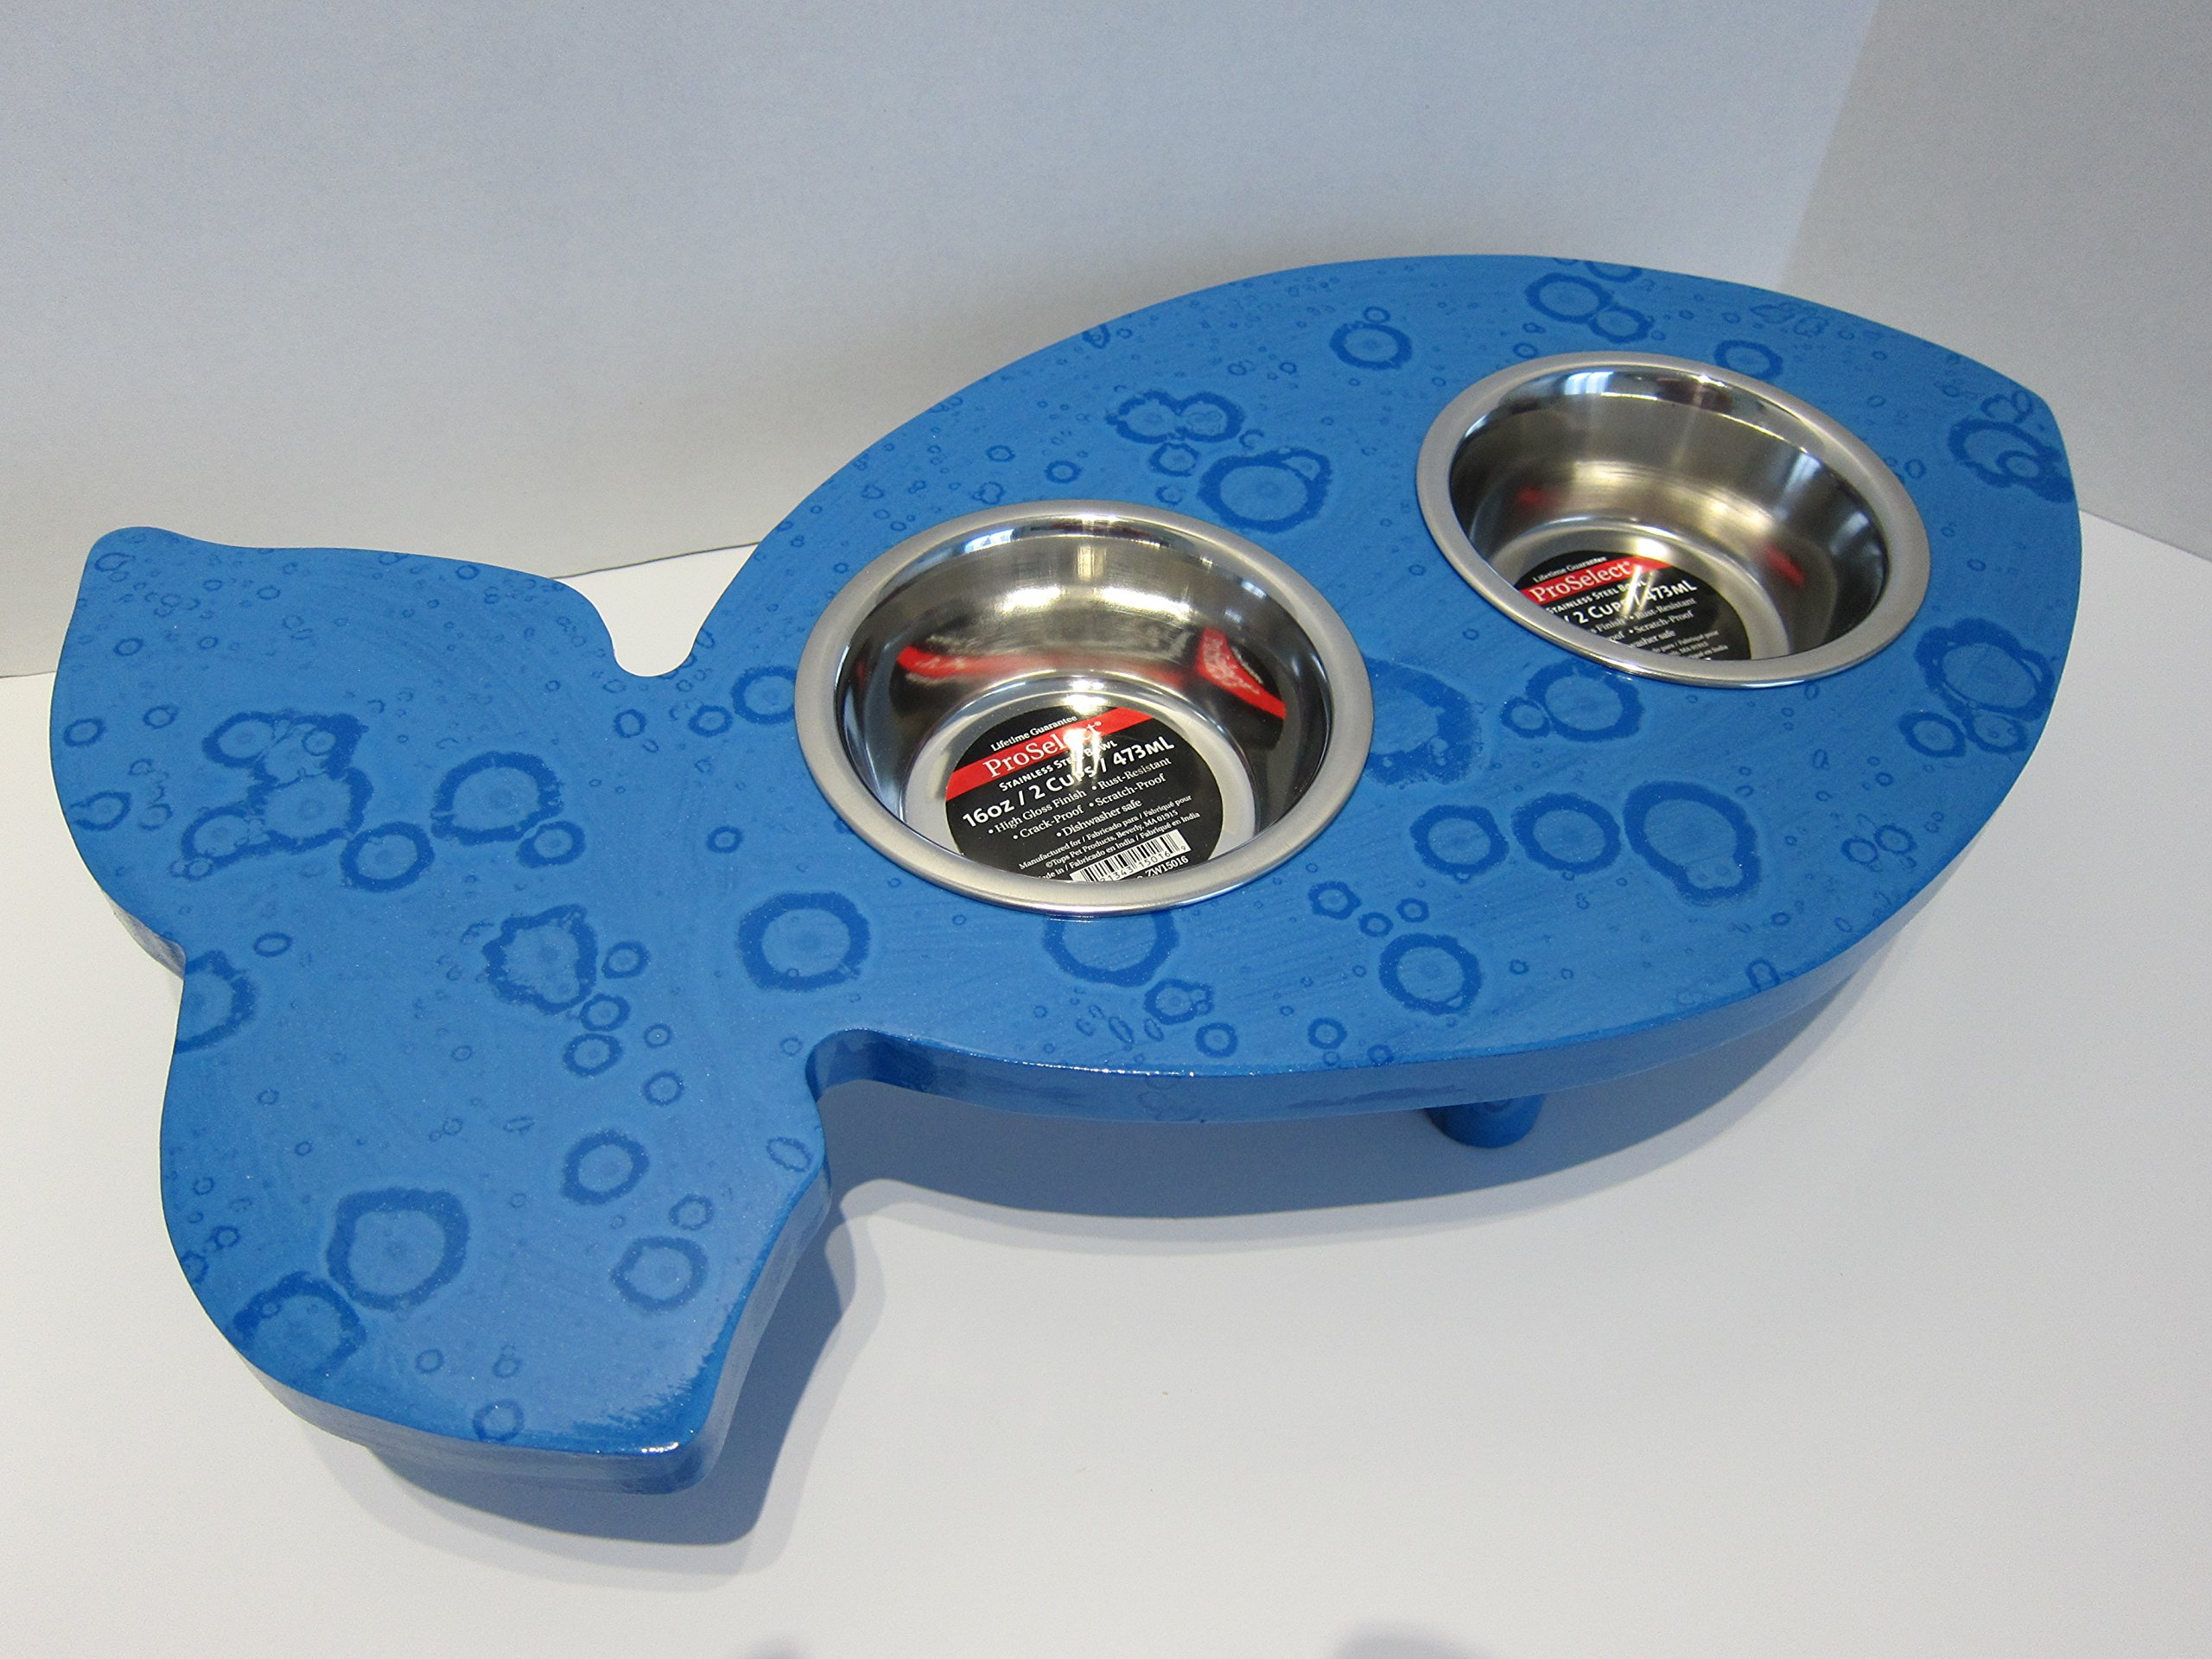 Fish Shaped Elevated Food Dish Holder - Xsmall by Clever Cat & Crafty Dog